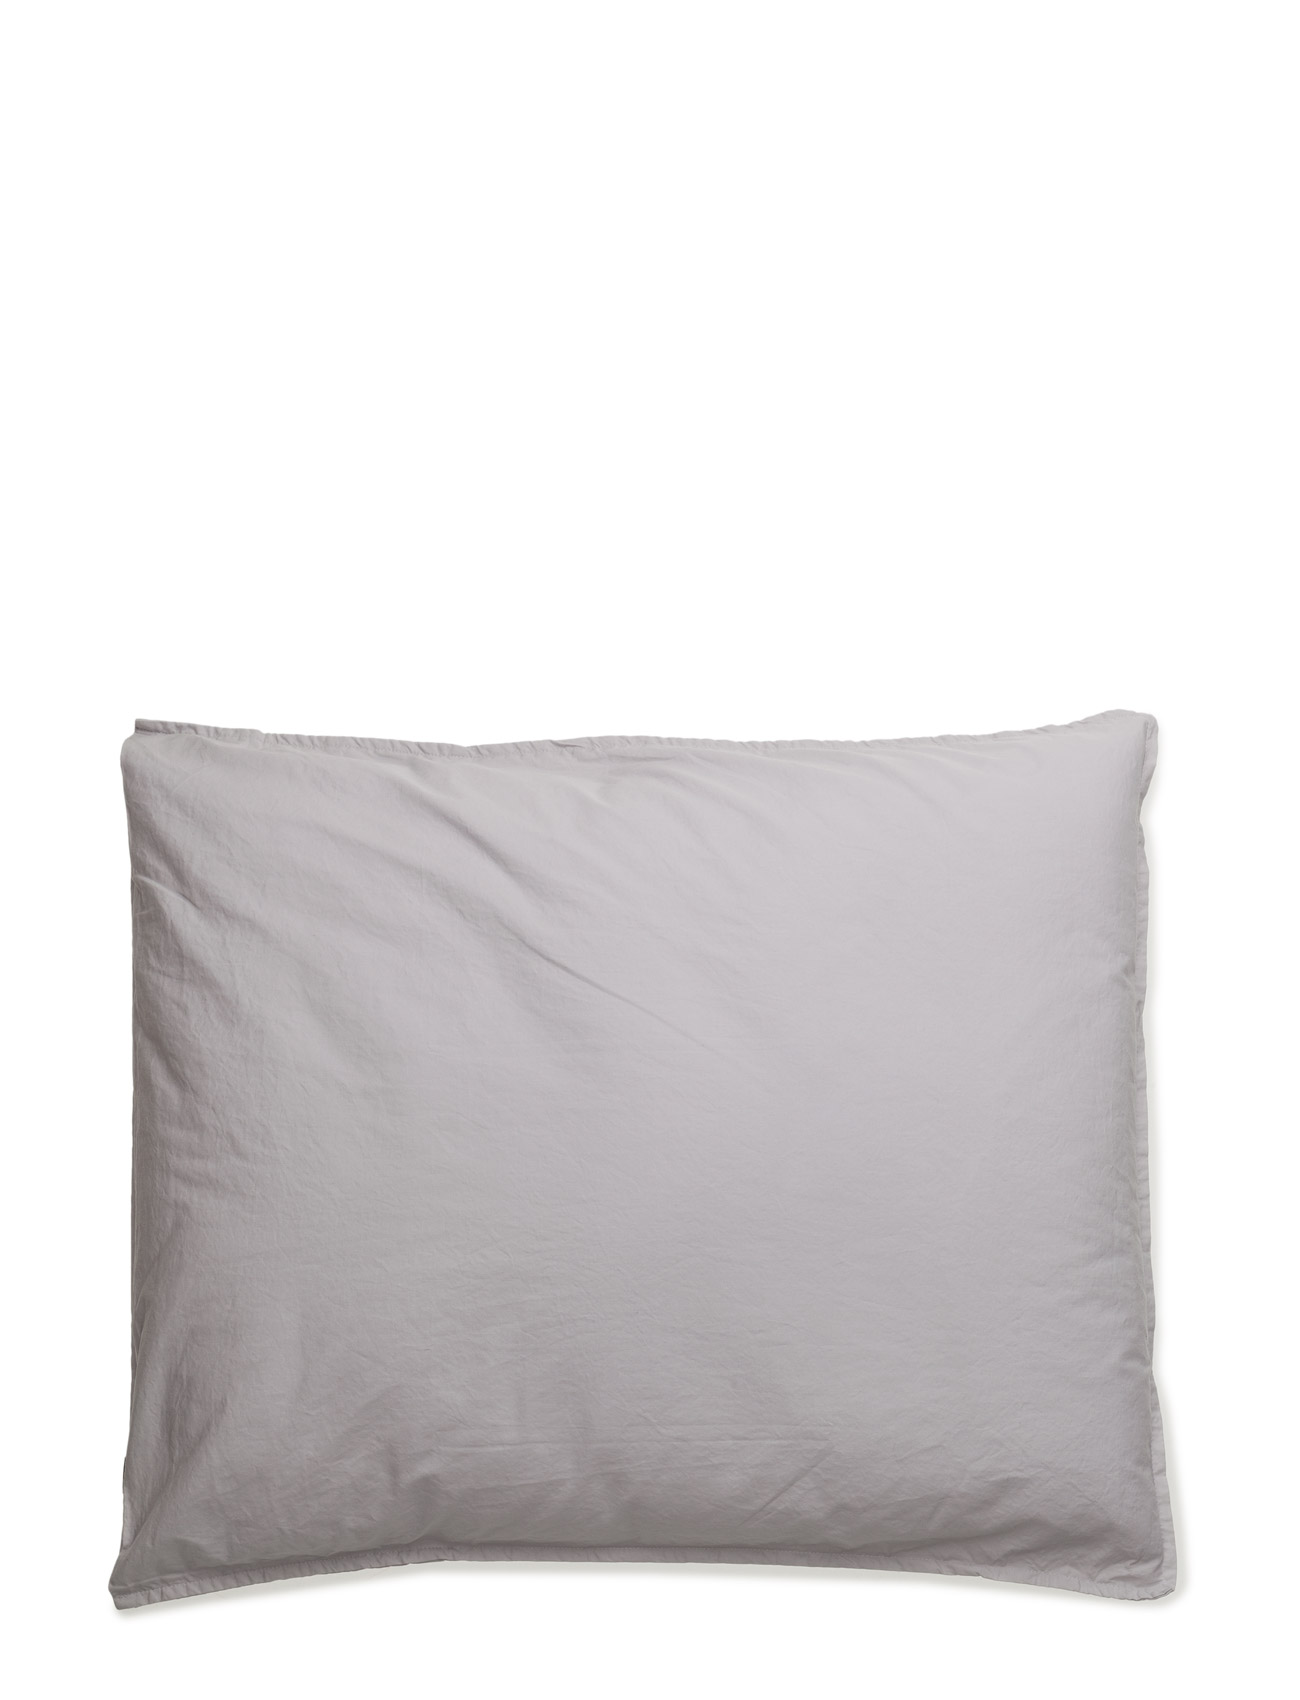 Himla Hope Plain Pillowcase